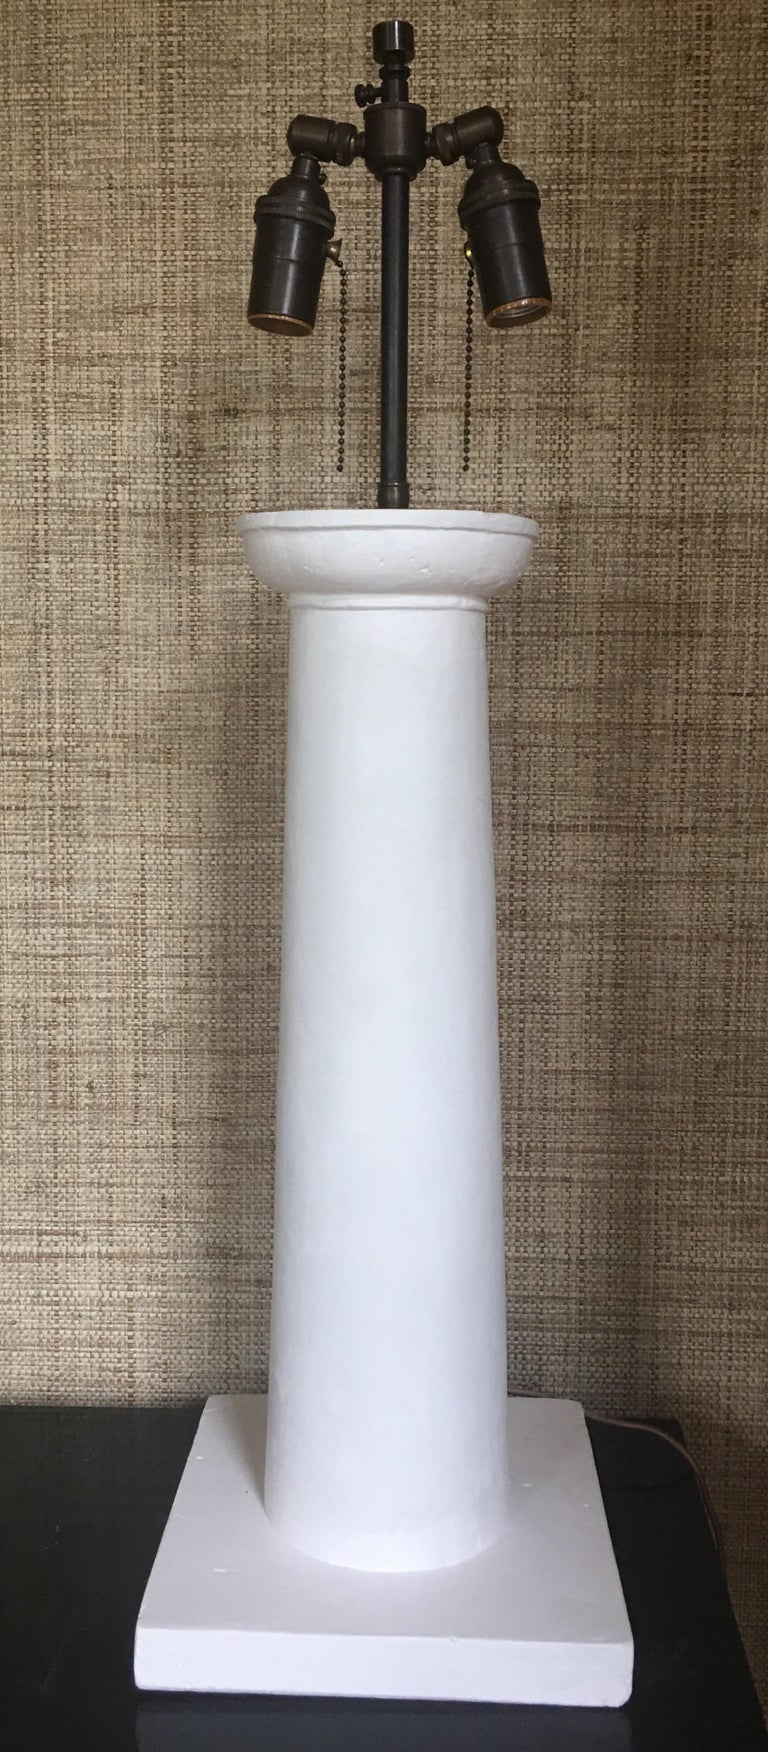 Jean-Michel Frank style Colonne matte white heavy weight molded plaster table lamp. Bronzed metal accents feature two double articulating standard sockets and an adjustable height shade extender finial. Extra long 8 foot fabric covered cord. Custom